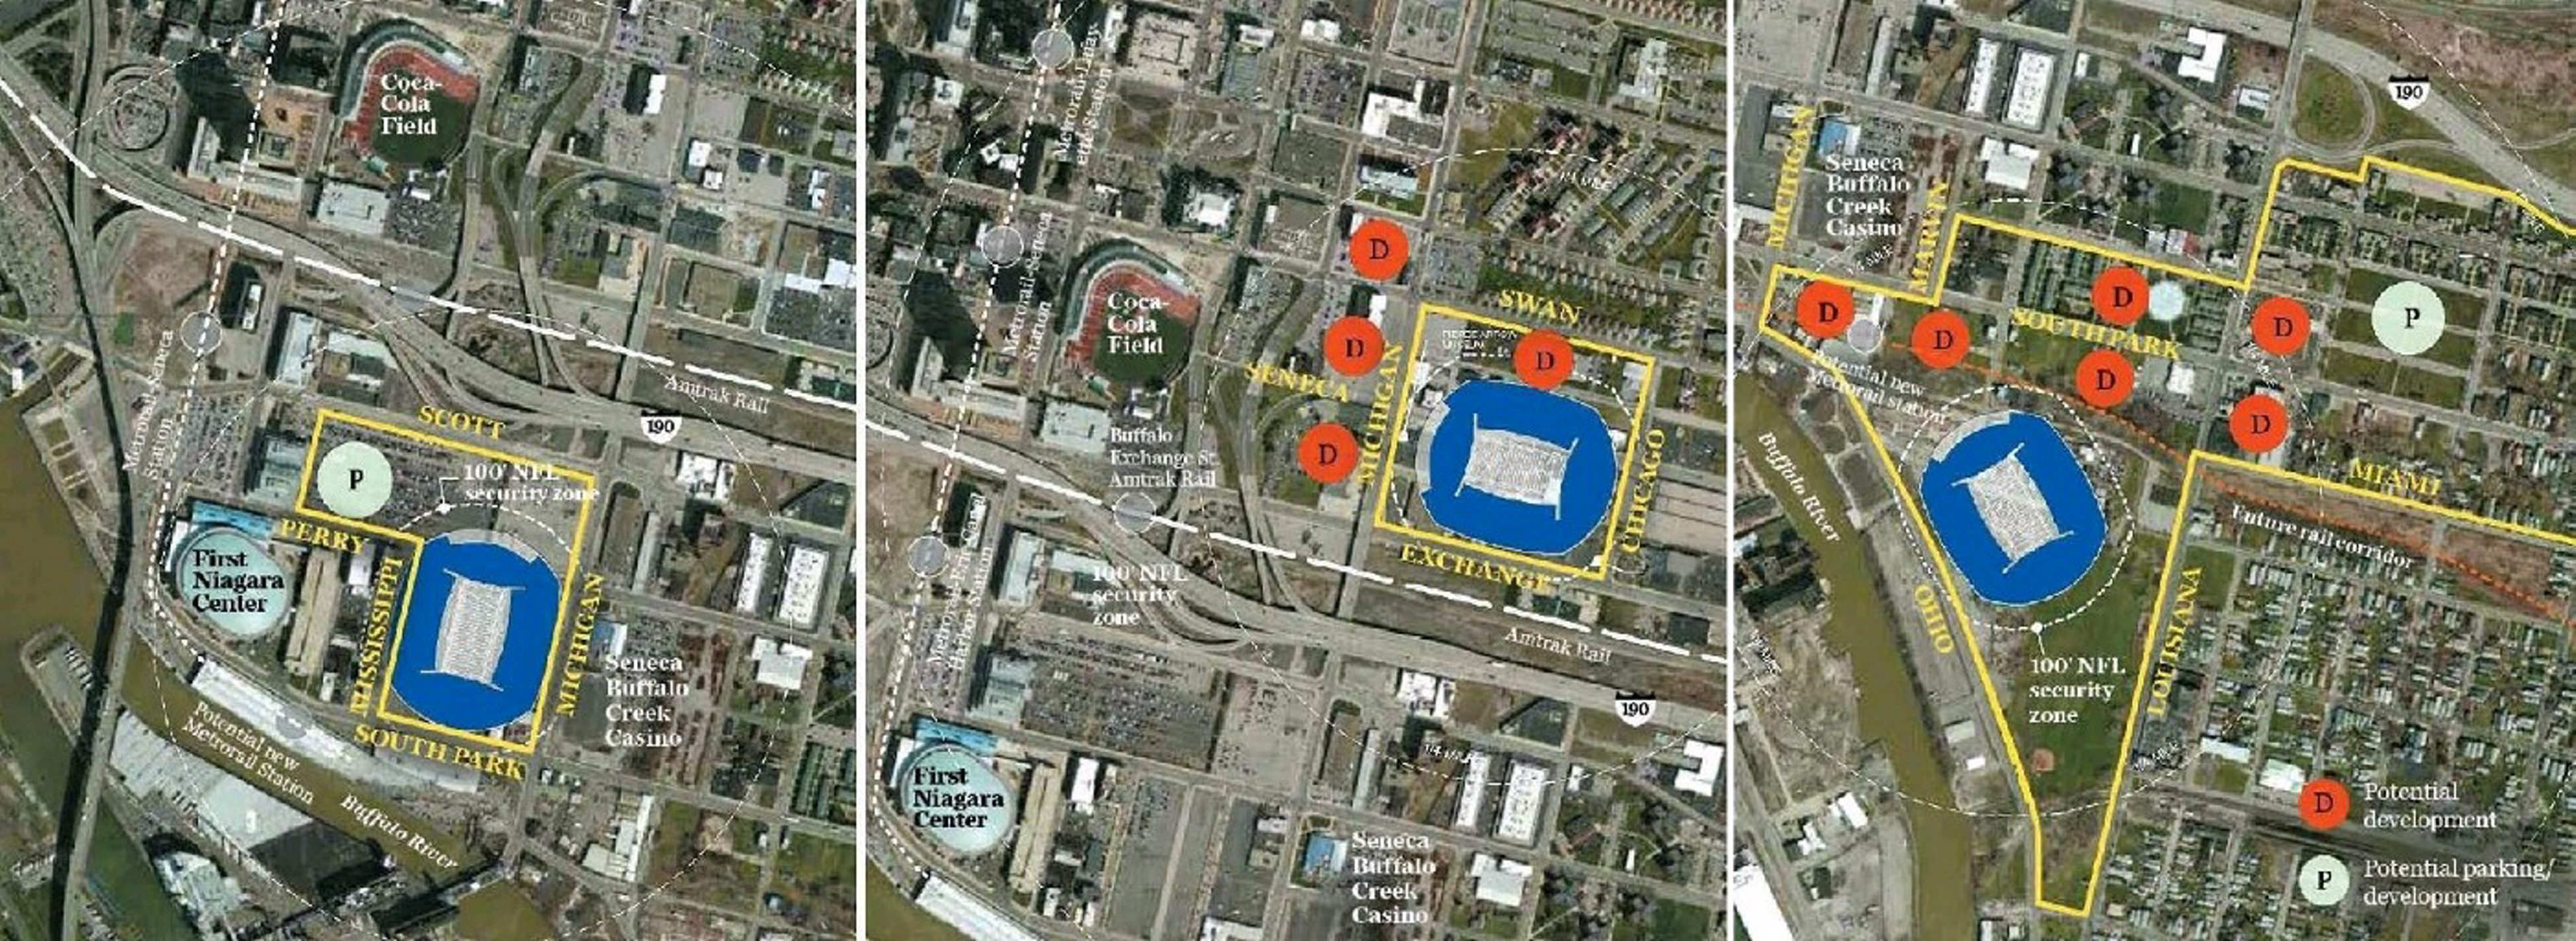 The shortlisted stadium sites in the City of Buffalo are, from left, the Cobblestone District, Exchange Street and South Park.